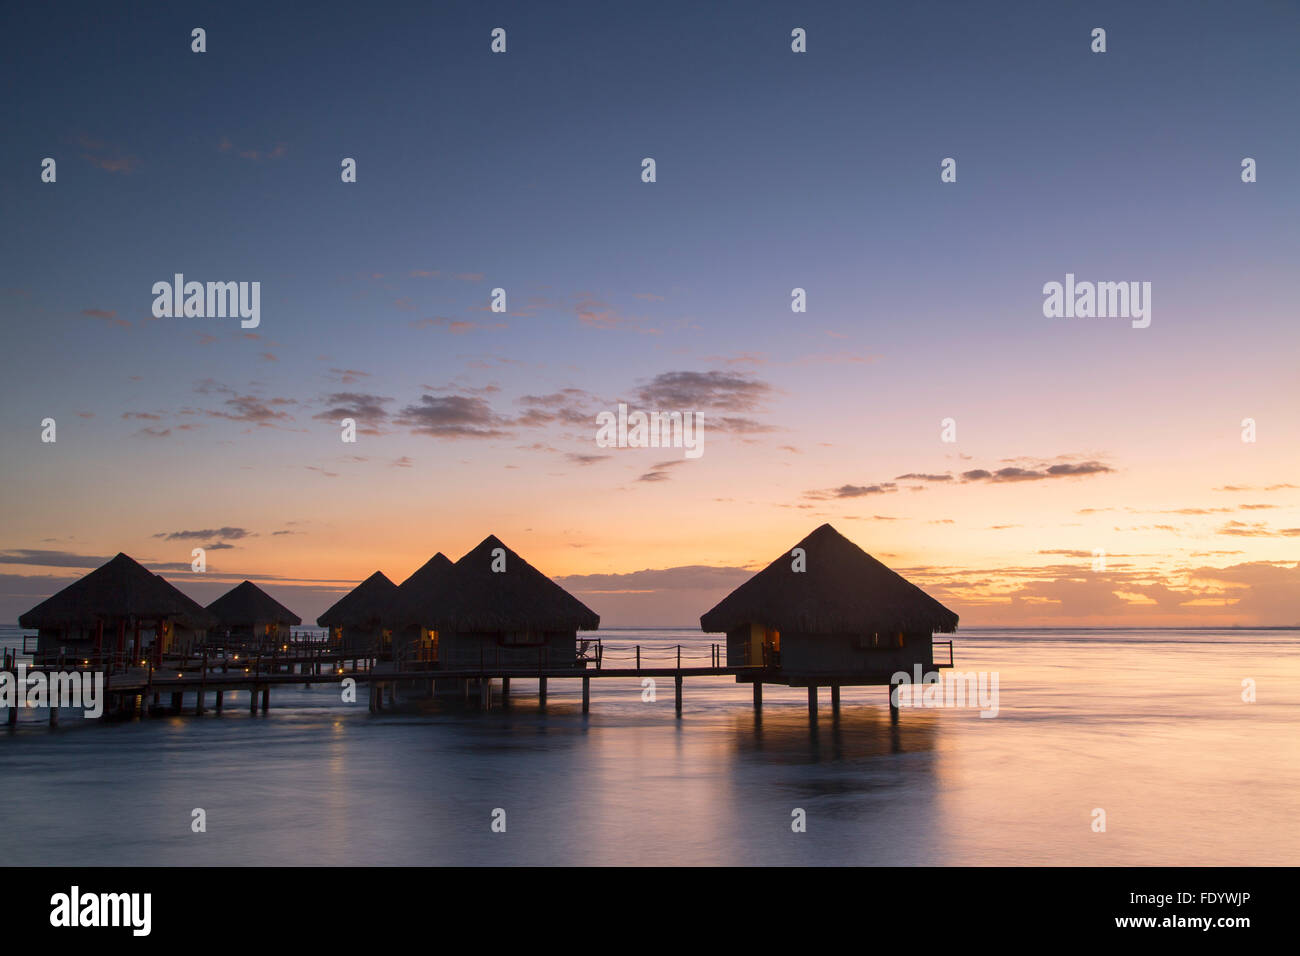 Overwater bungalows at Le Meridien Tahiti Hotel at sunset, Pape'ete, Tahiti, French Polynesia - Stock Image